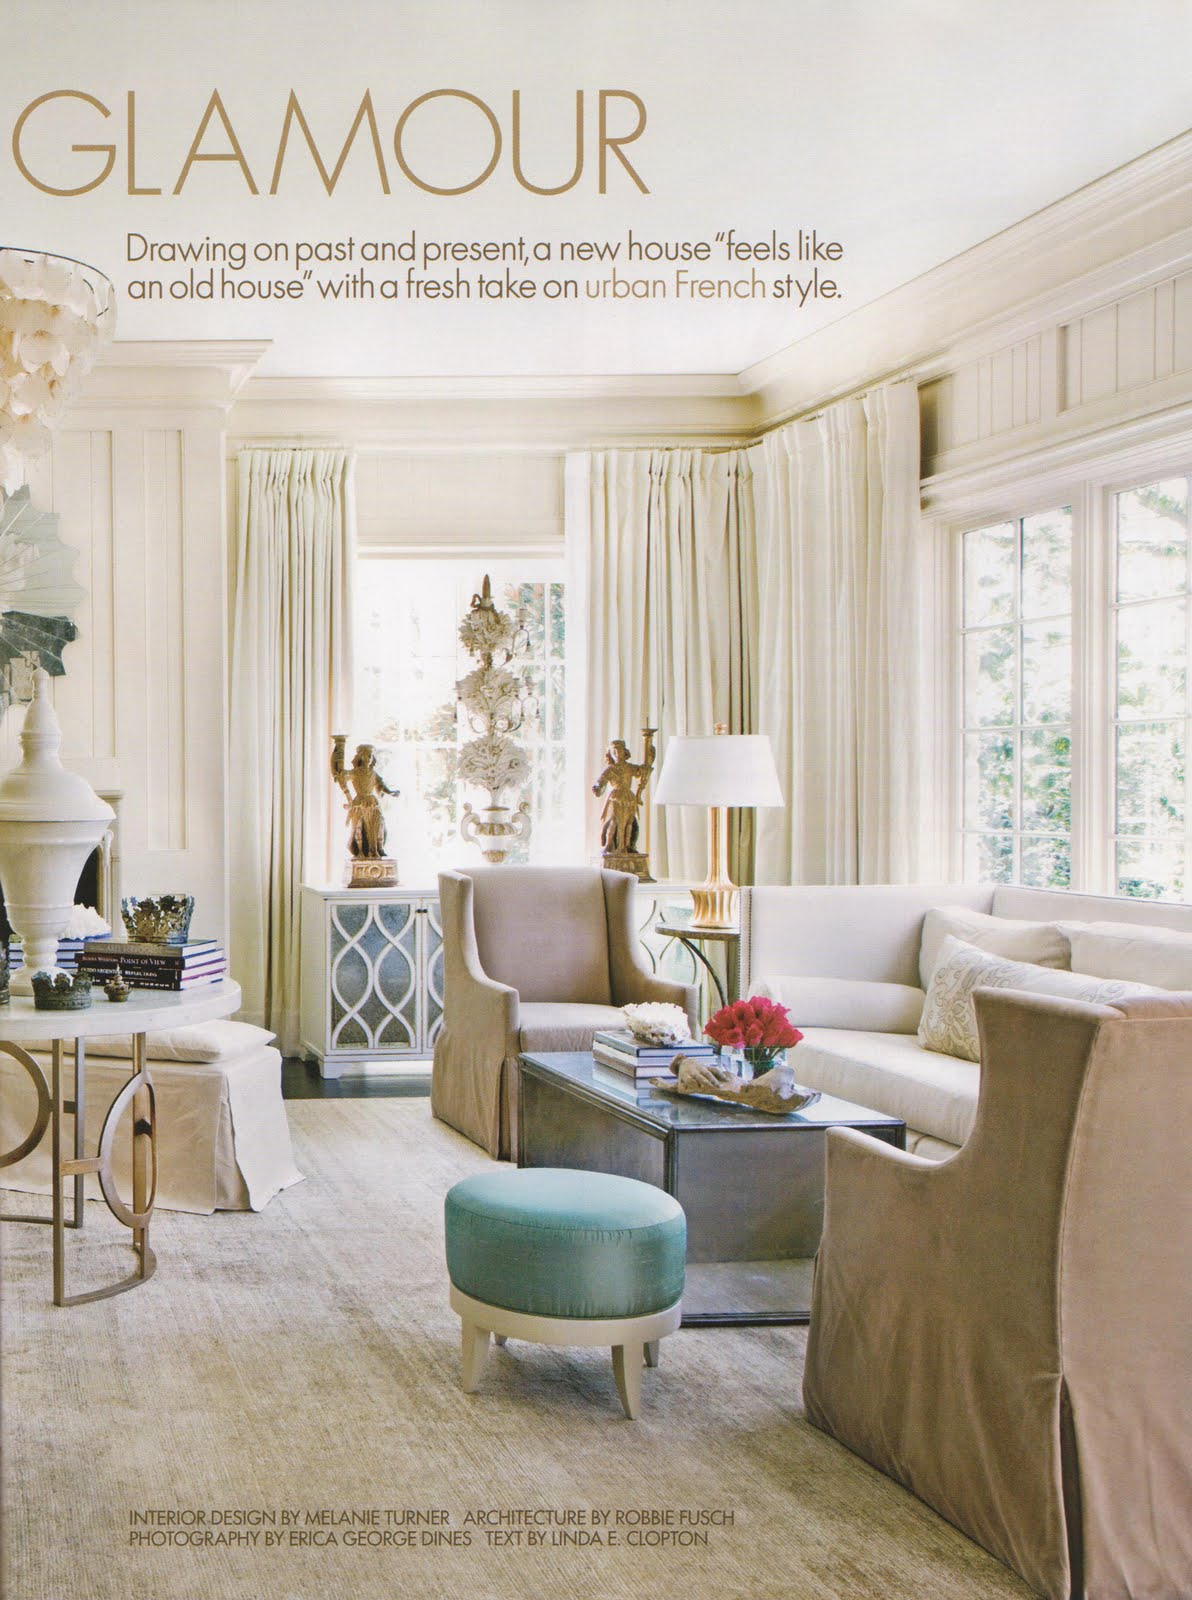 images: scanned by Shelter via Veranda and from Turner Davis Interiors